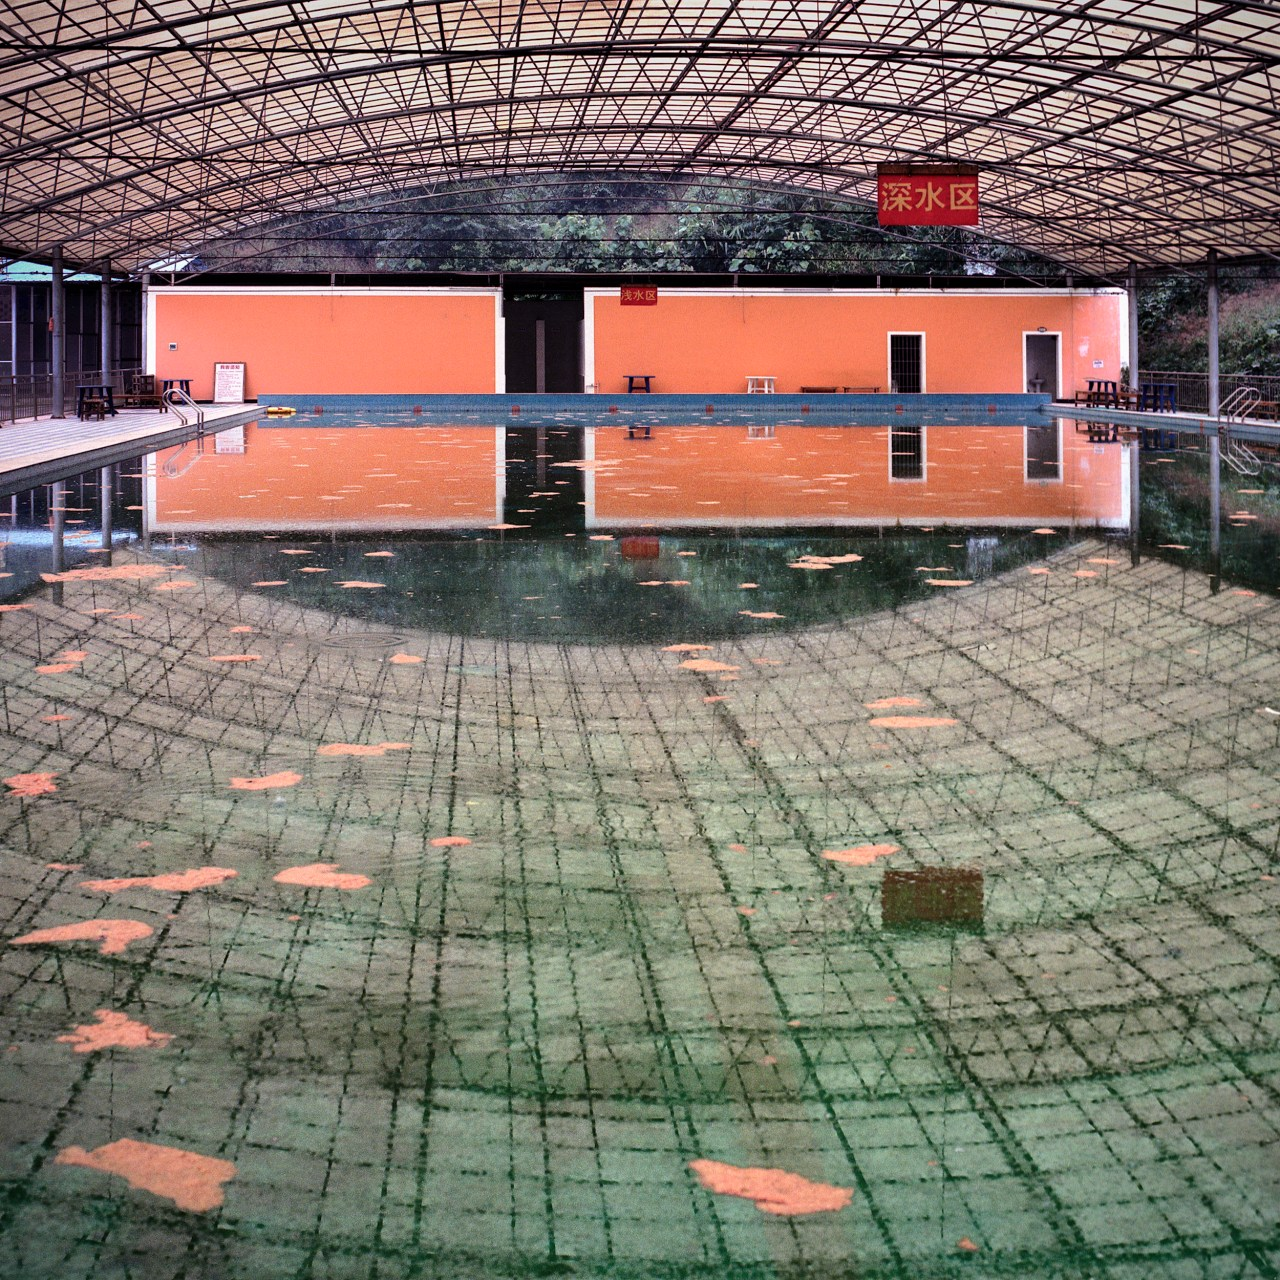 A swimming pool was built as part of a sports complex intended for residential use.